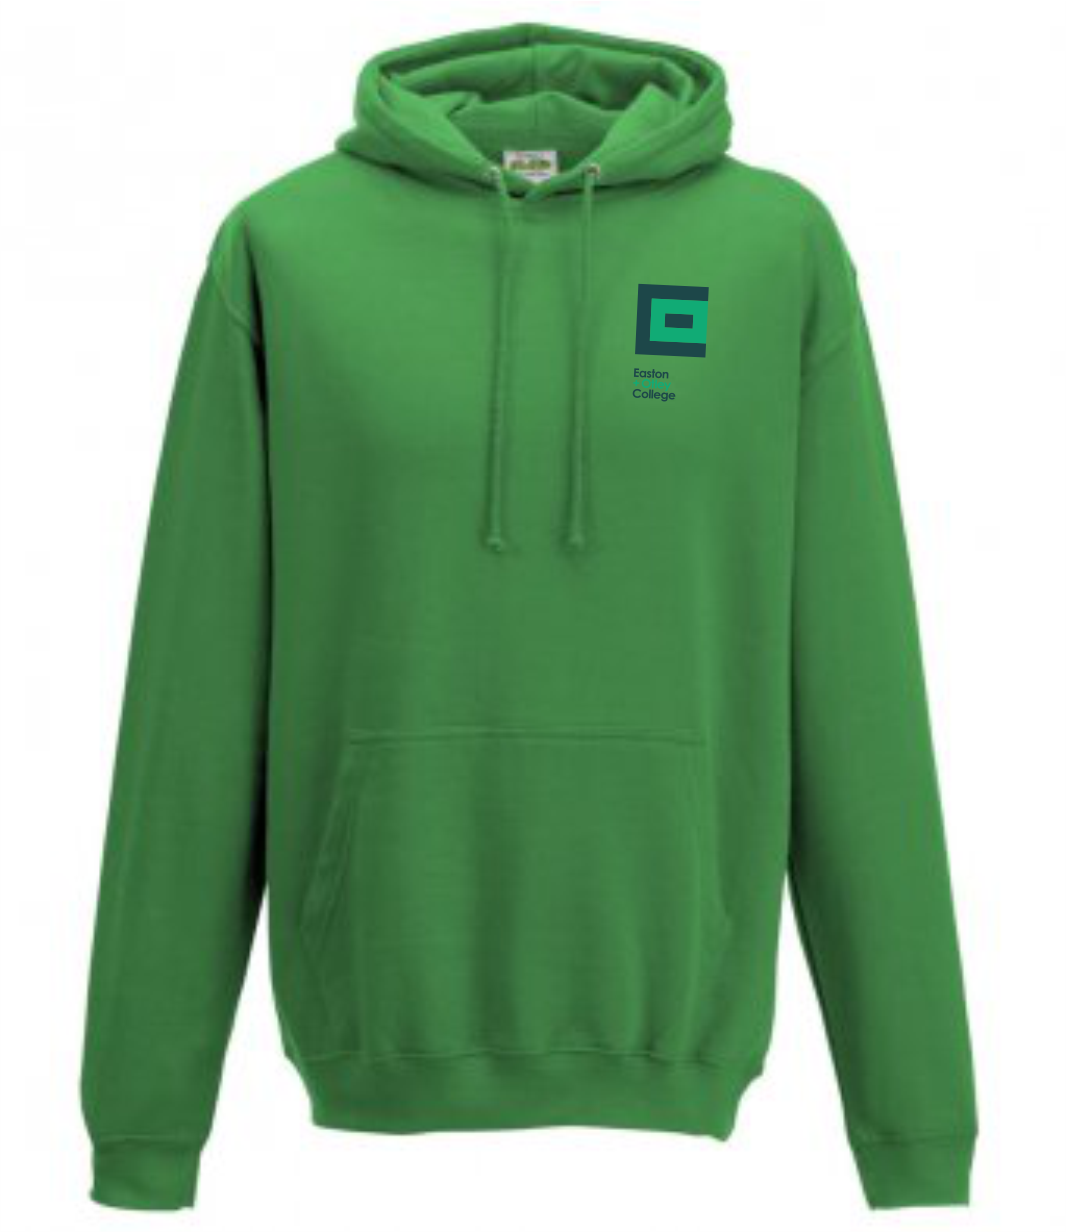 Easton College Animal Studies mens hoody